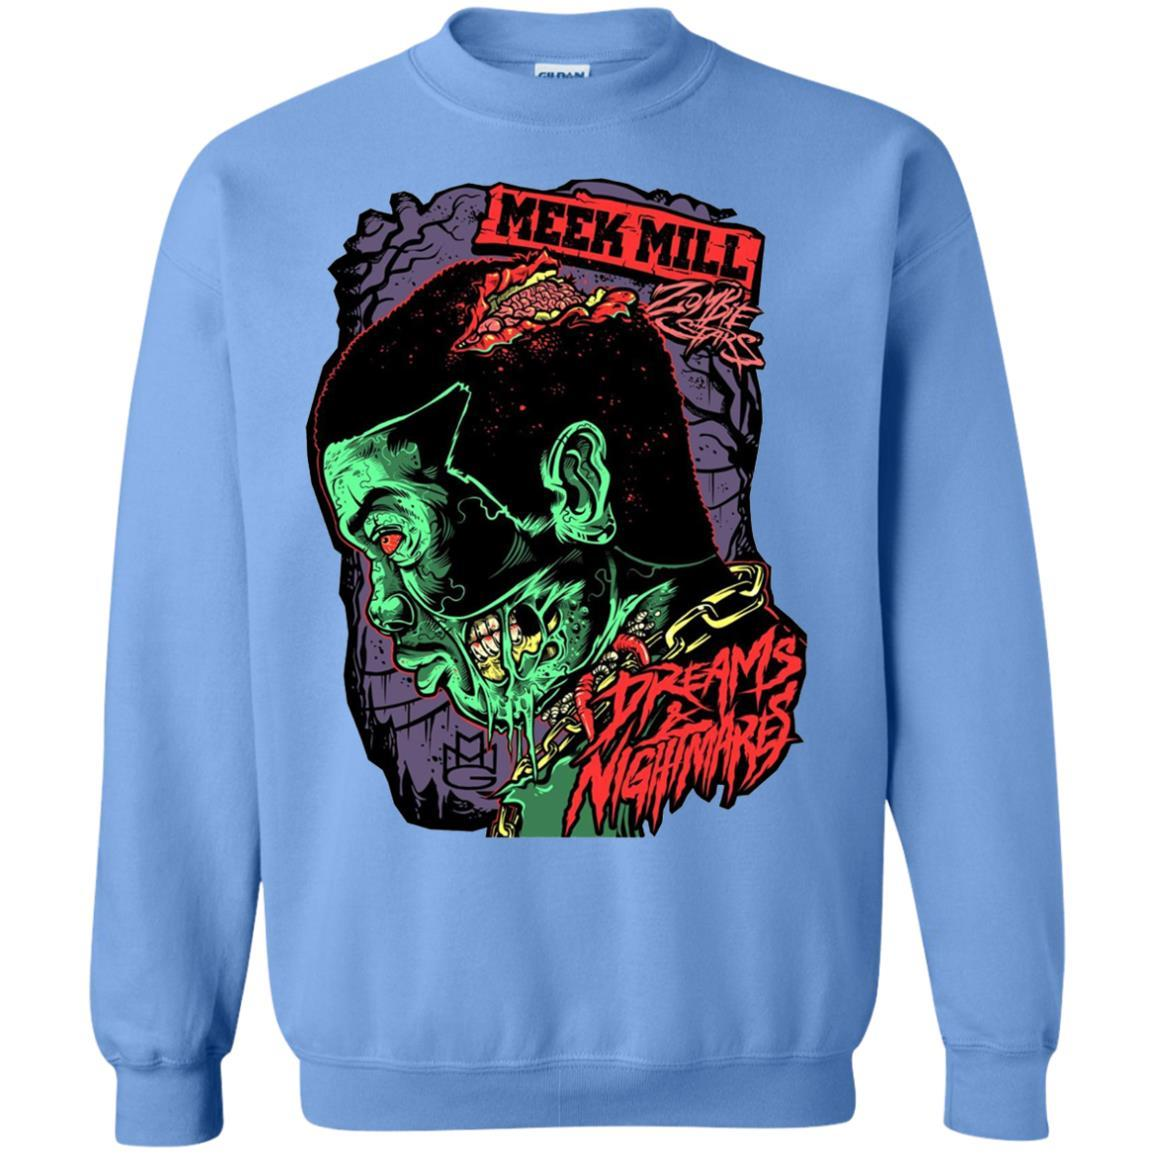 Meek Mill Zombie Tee Shirt Halloween - Crewneck Pullover Sweatshirt Carolina Blue / 5XL